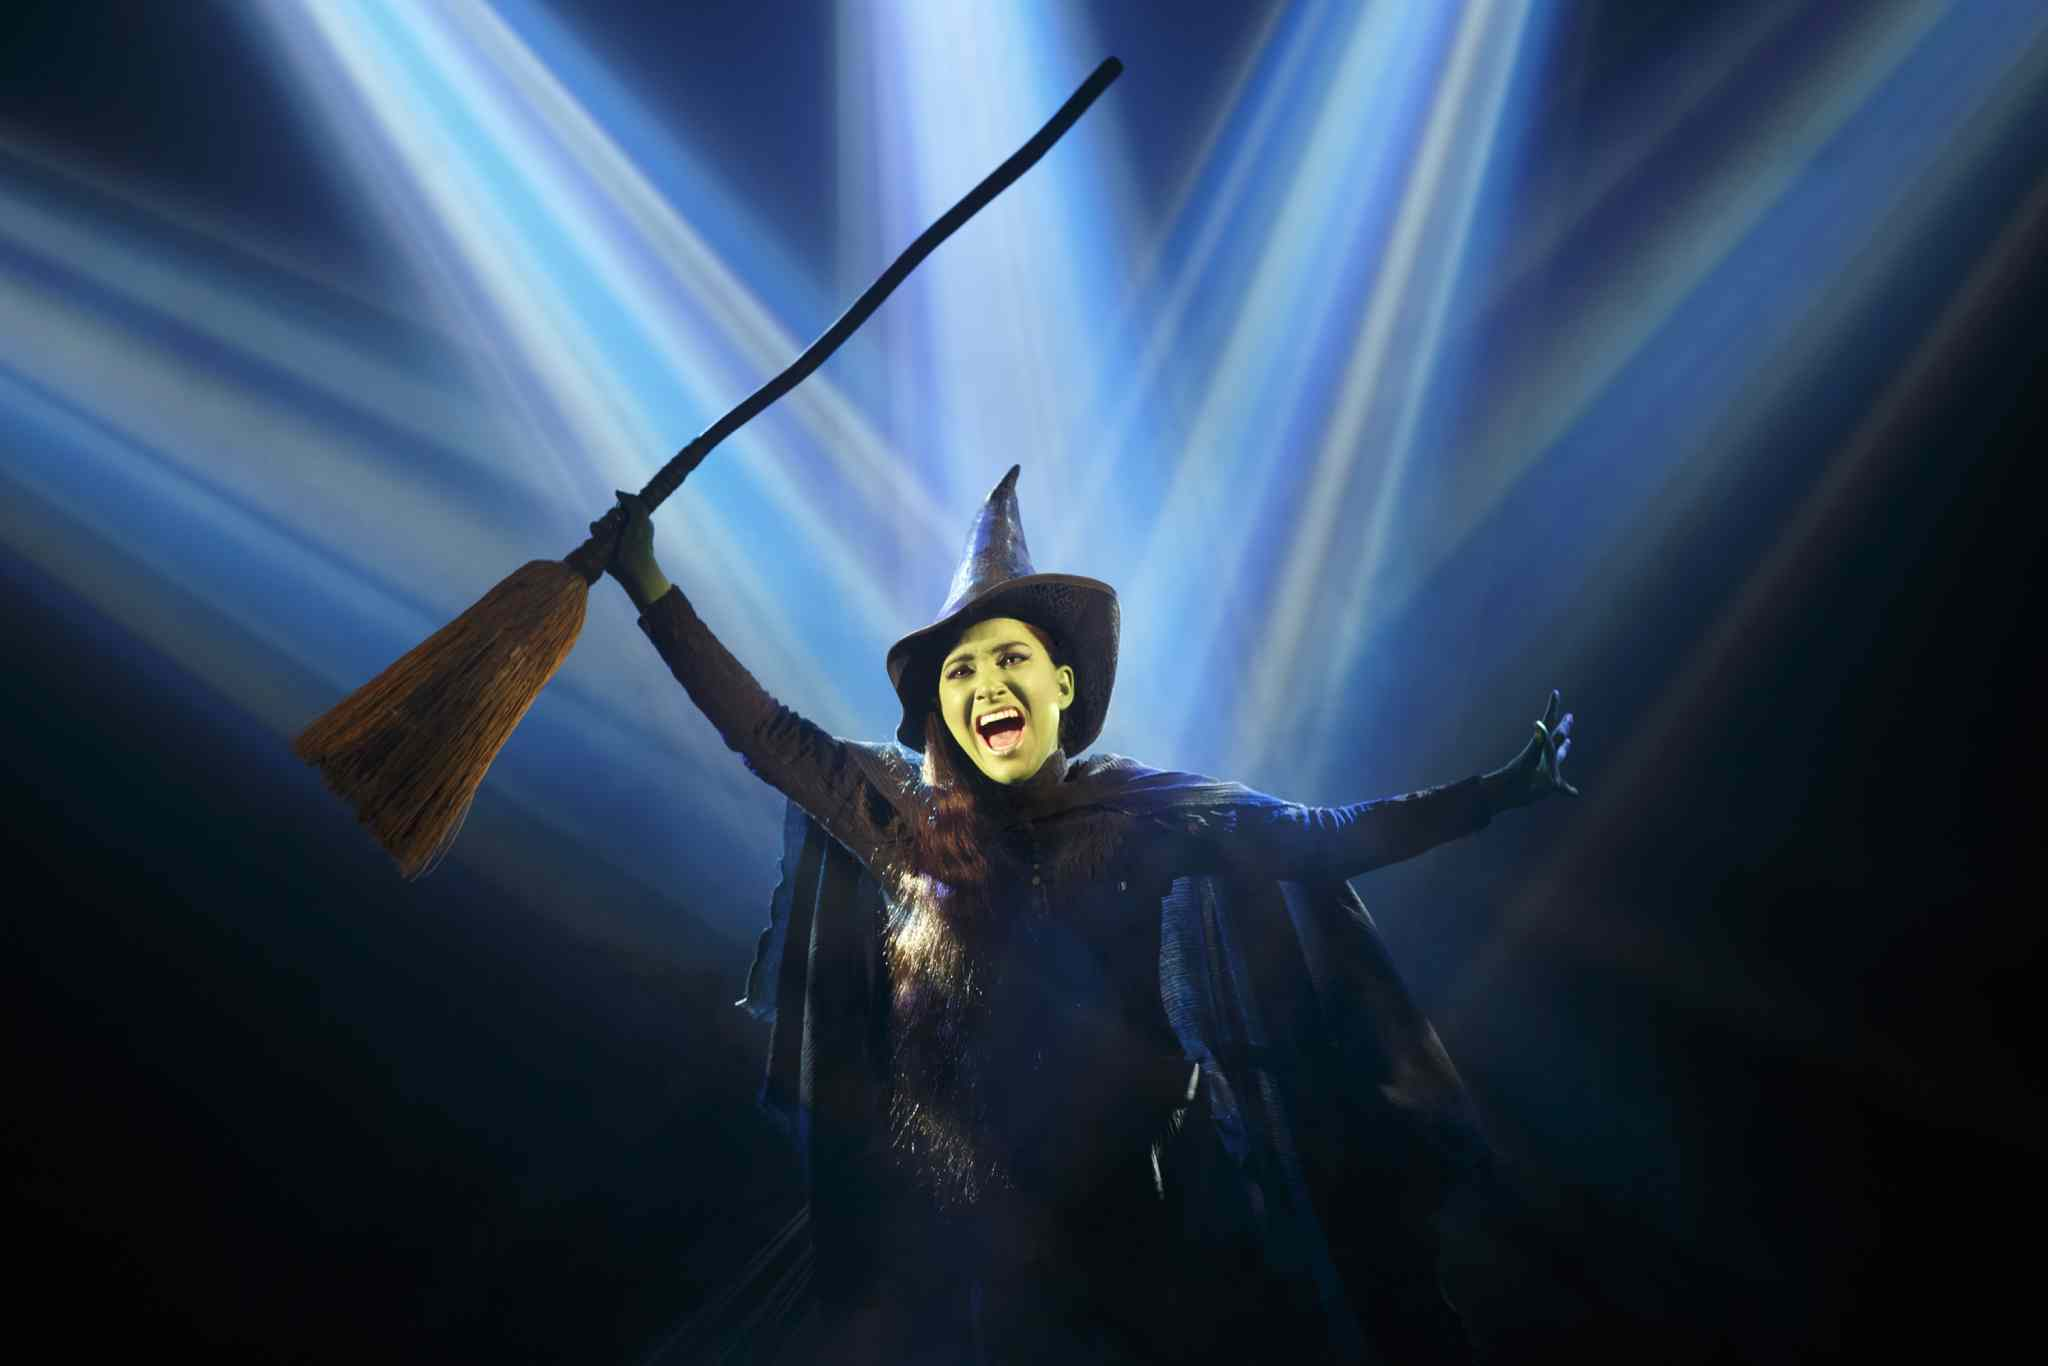 Winnipeggers can win the chance to buy $25 tickets to see the touring production of Wicked.